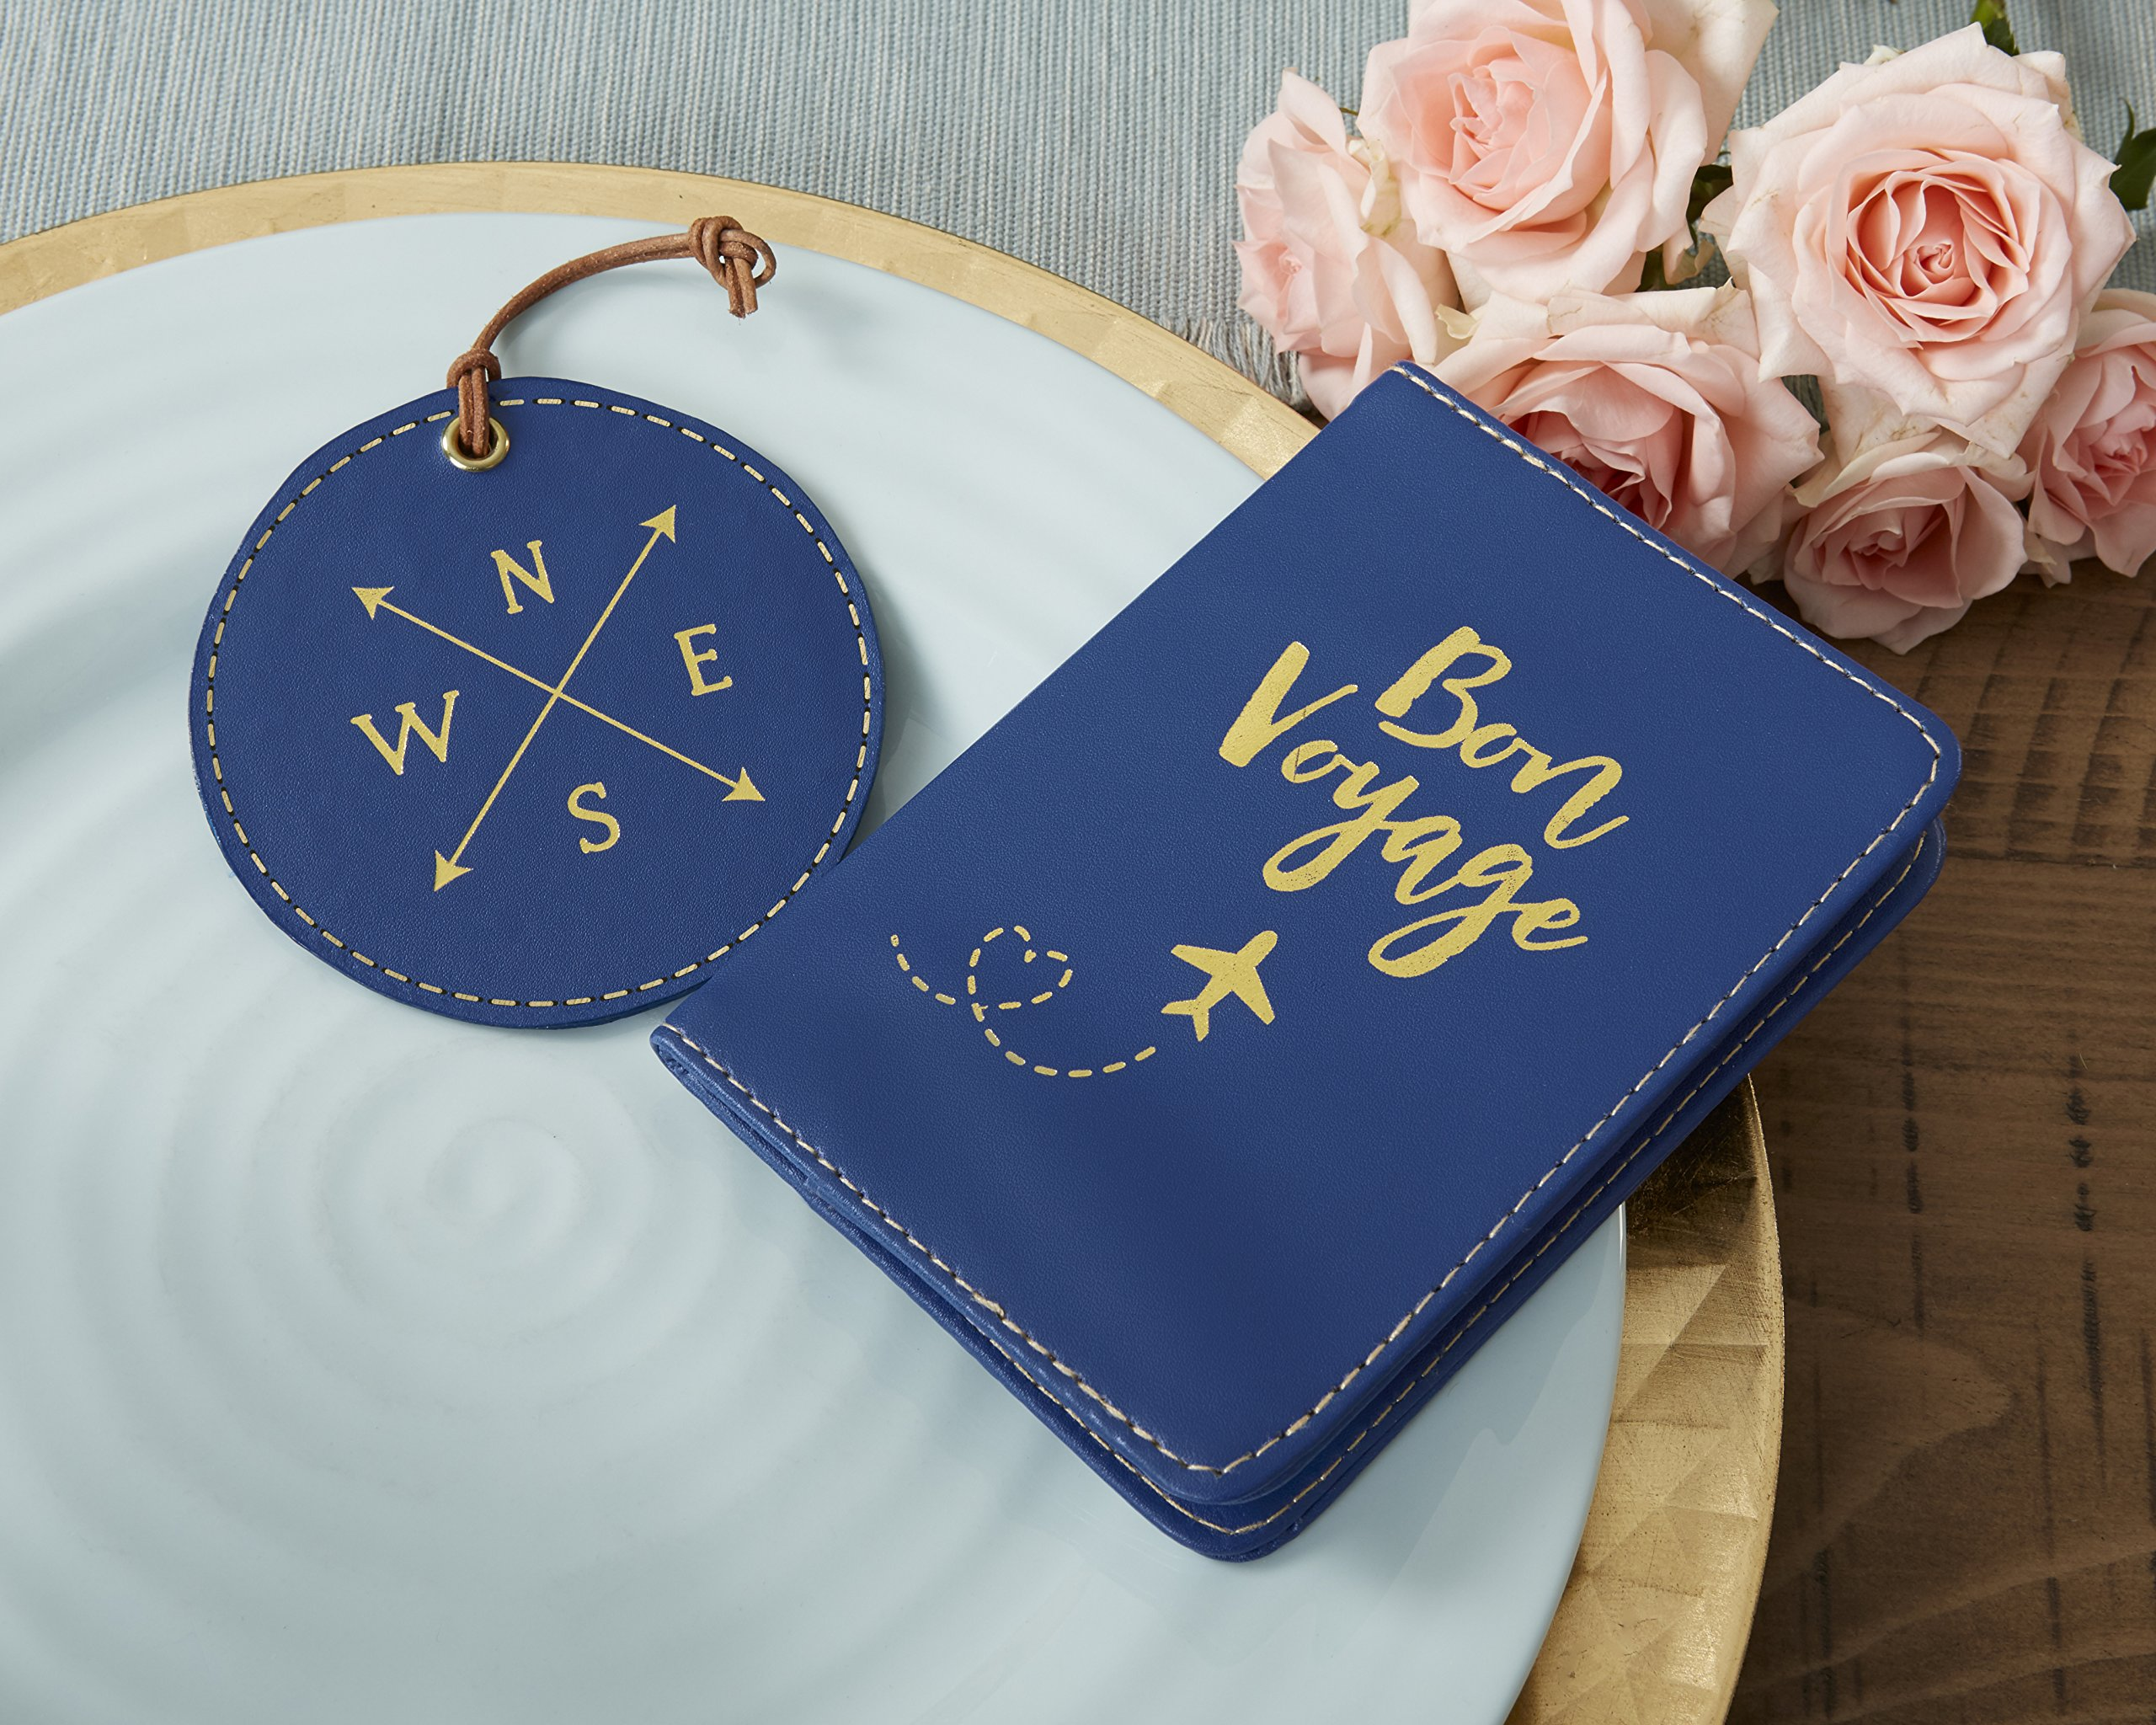 Kate Aspen, Bon Voyage Getaway Gift Set, Passport Cover and Luggage Tag by Kate Aspen